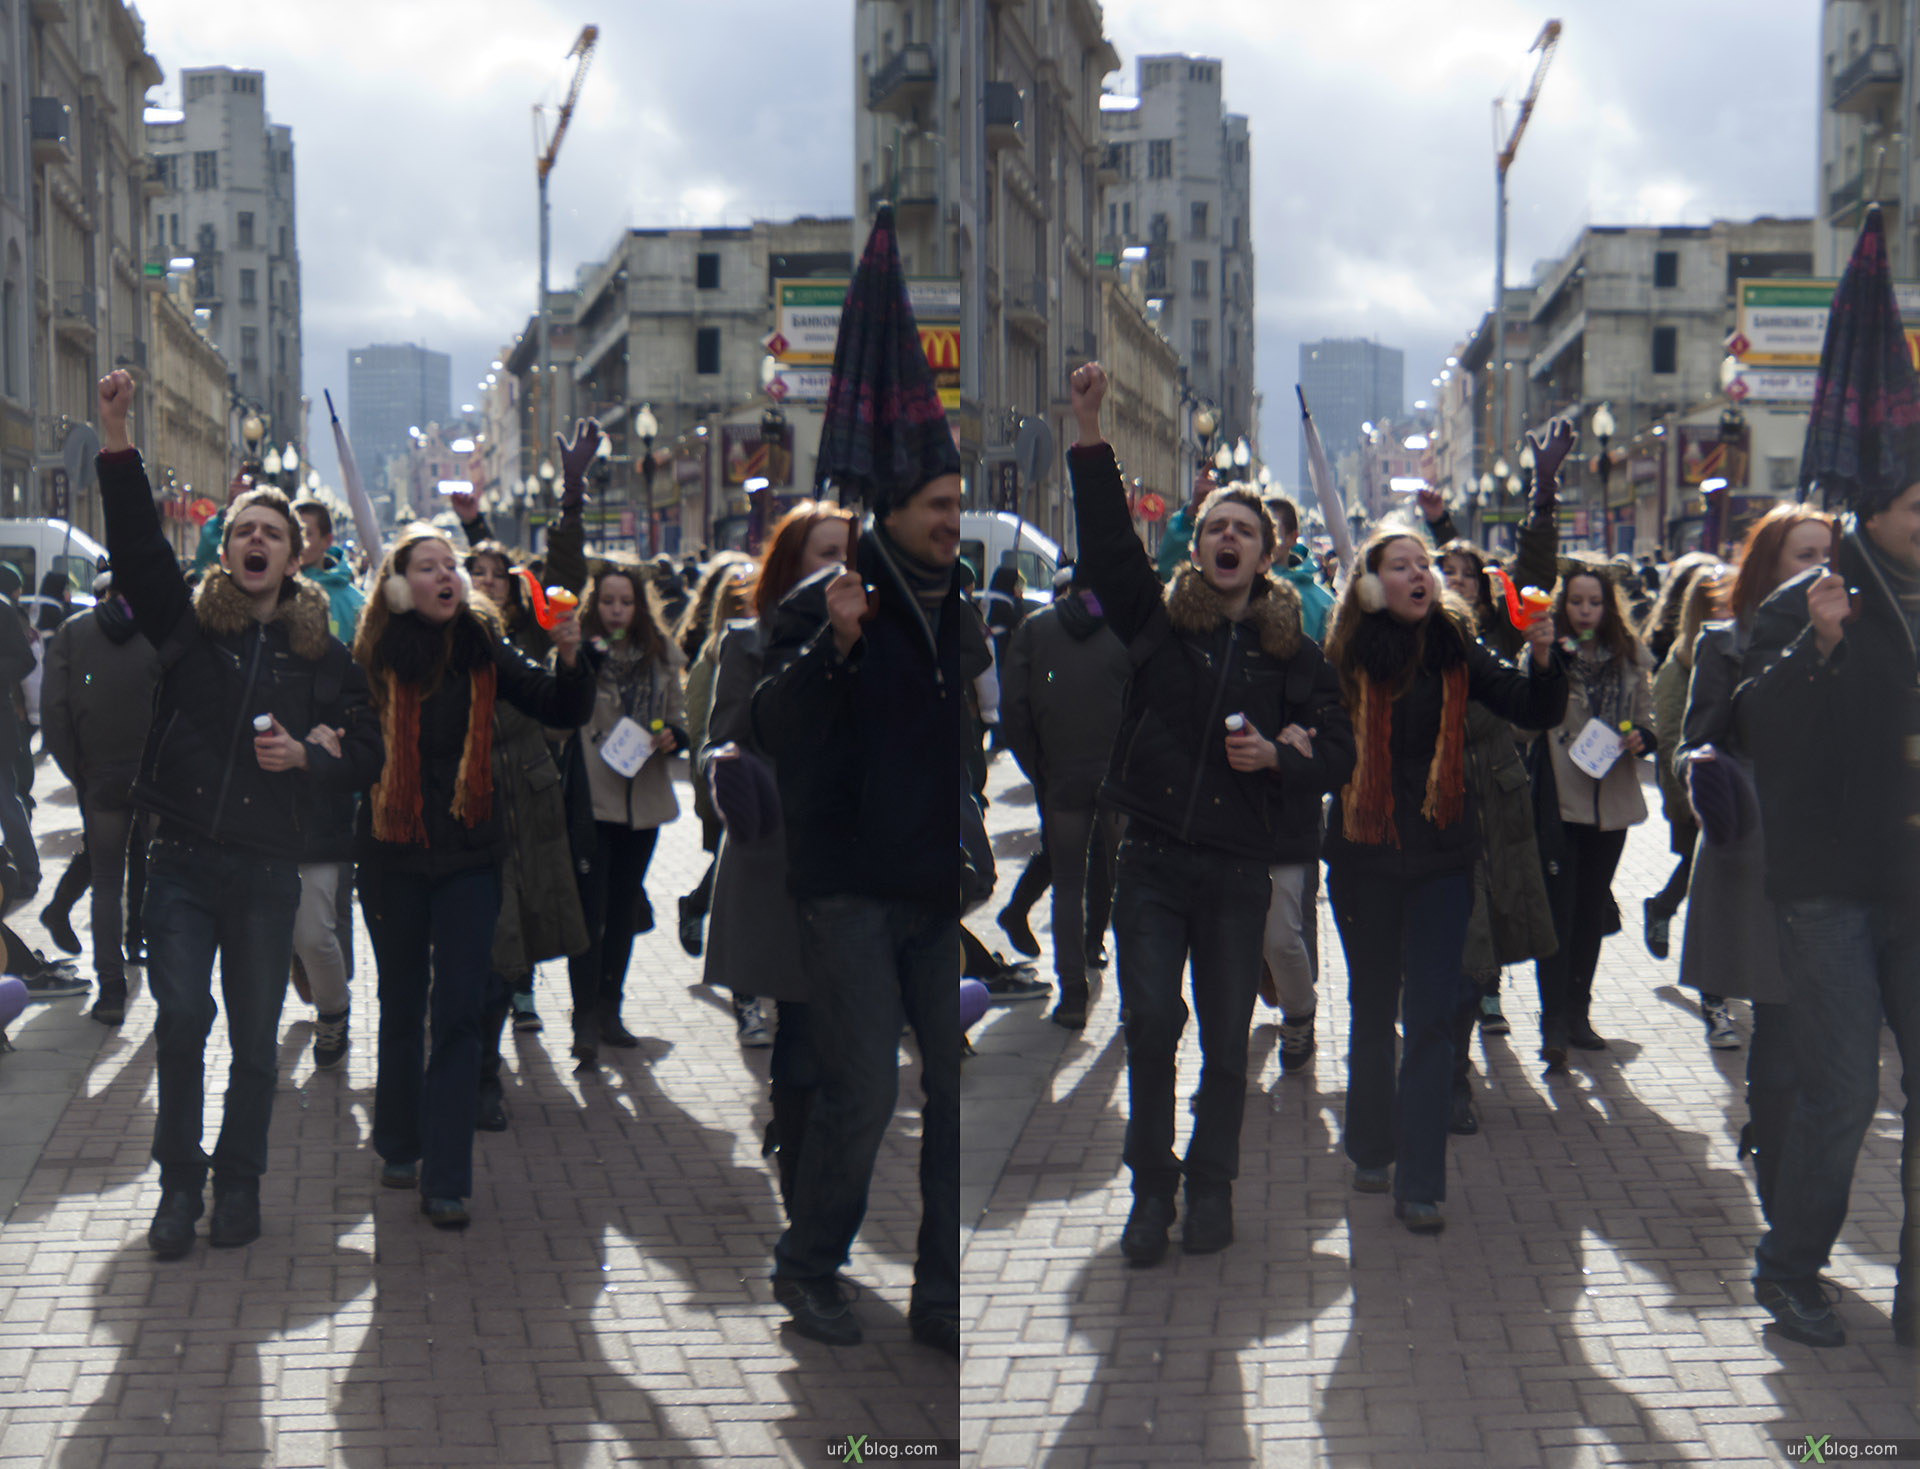 2011 Moscow, Dreamflash, Old Arbat st., Москва, Дримфлеш, Старый Арбат, Shot with Canon 5D mark 2, 3D, stereo, cross-eyed, стерео, стереопара, Loreo 3D lens in a cap